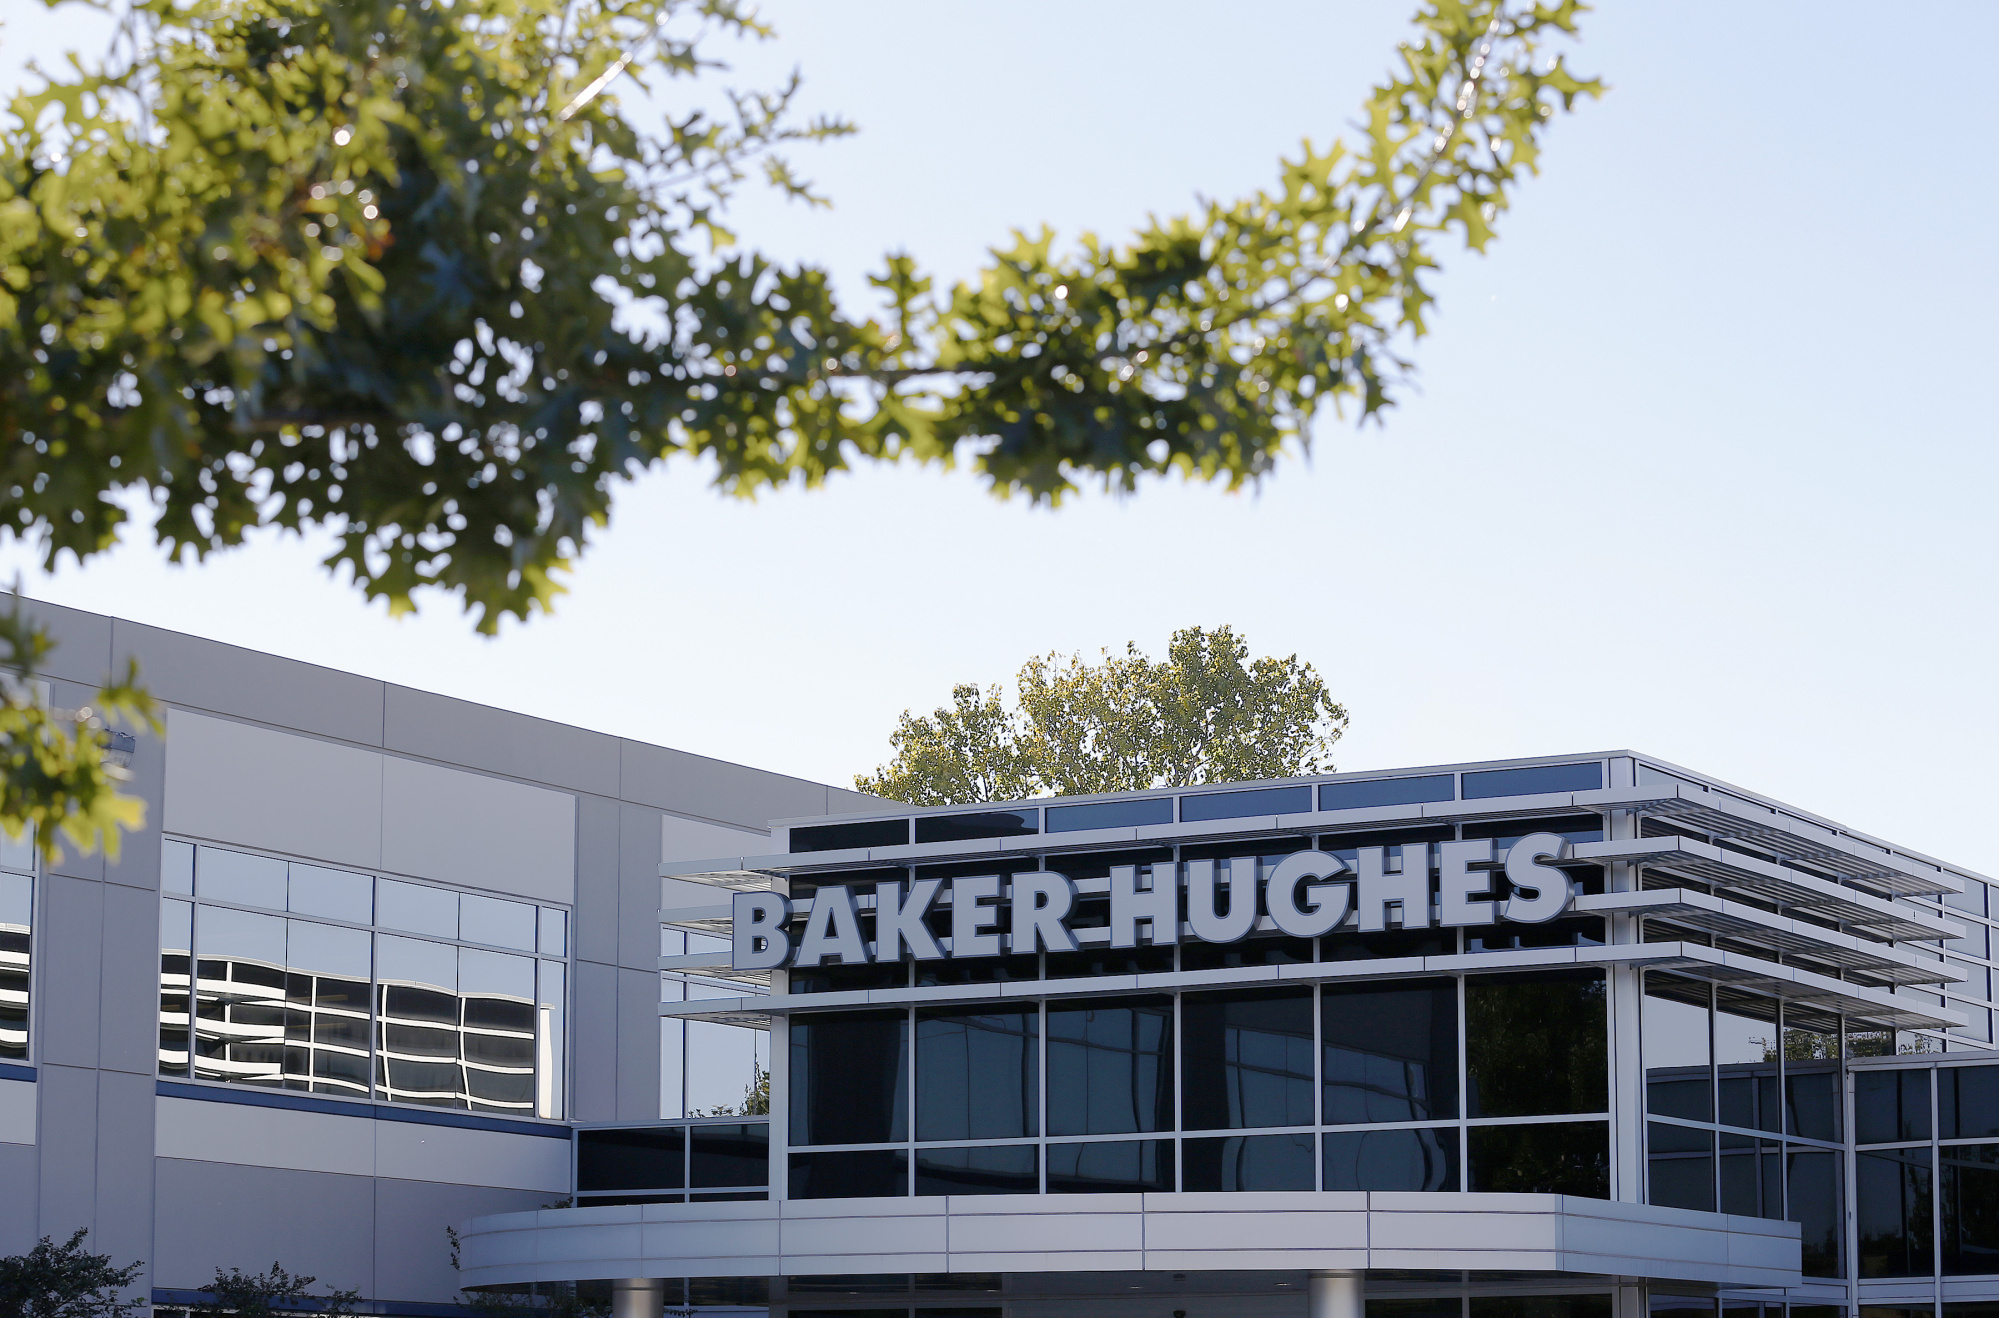 Baker Hughes Inc. signage is displayed at one of the company's facilities in Houston, Texas, U.S. Photographer: Aaron M. Sprecher/Bloomberg